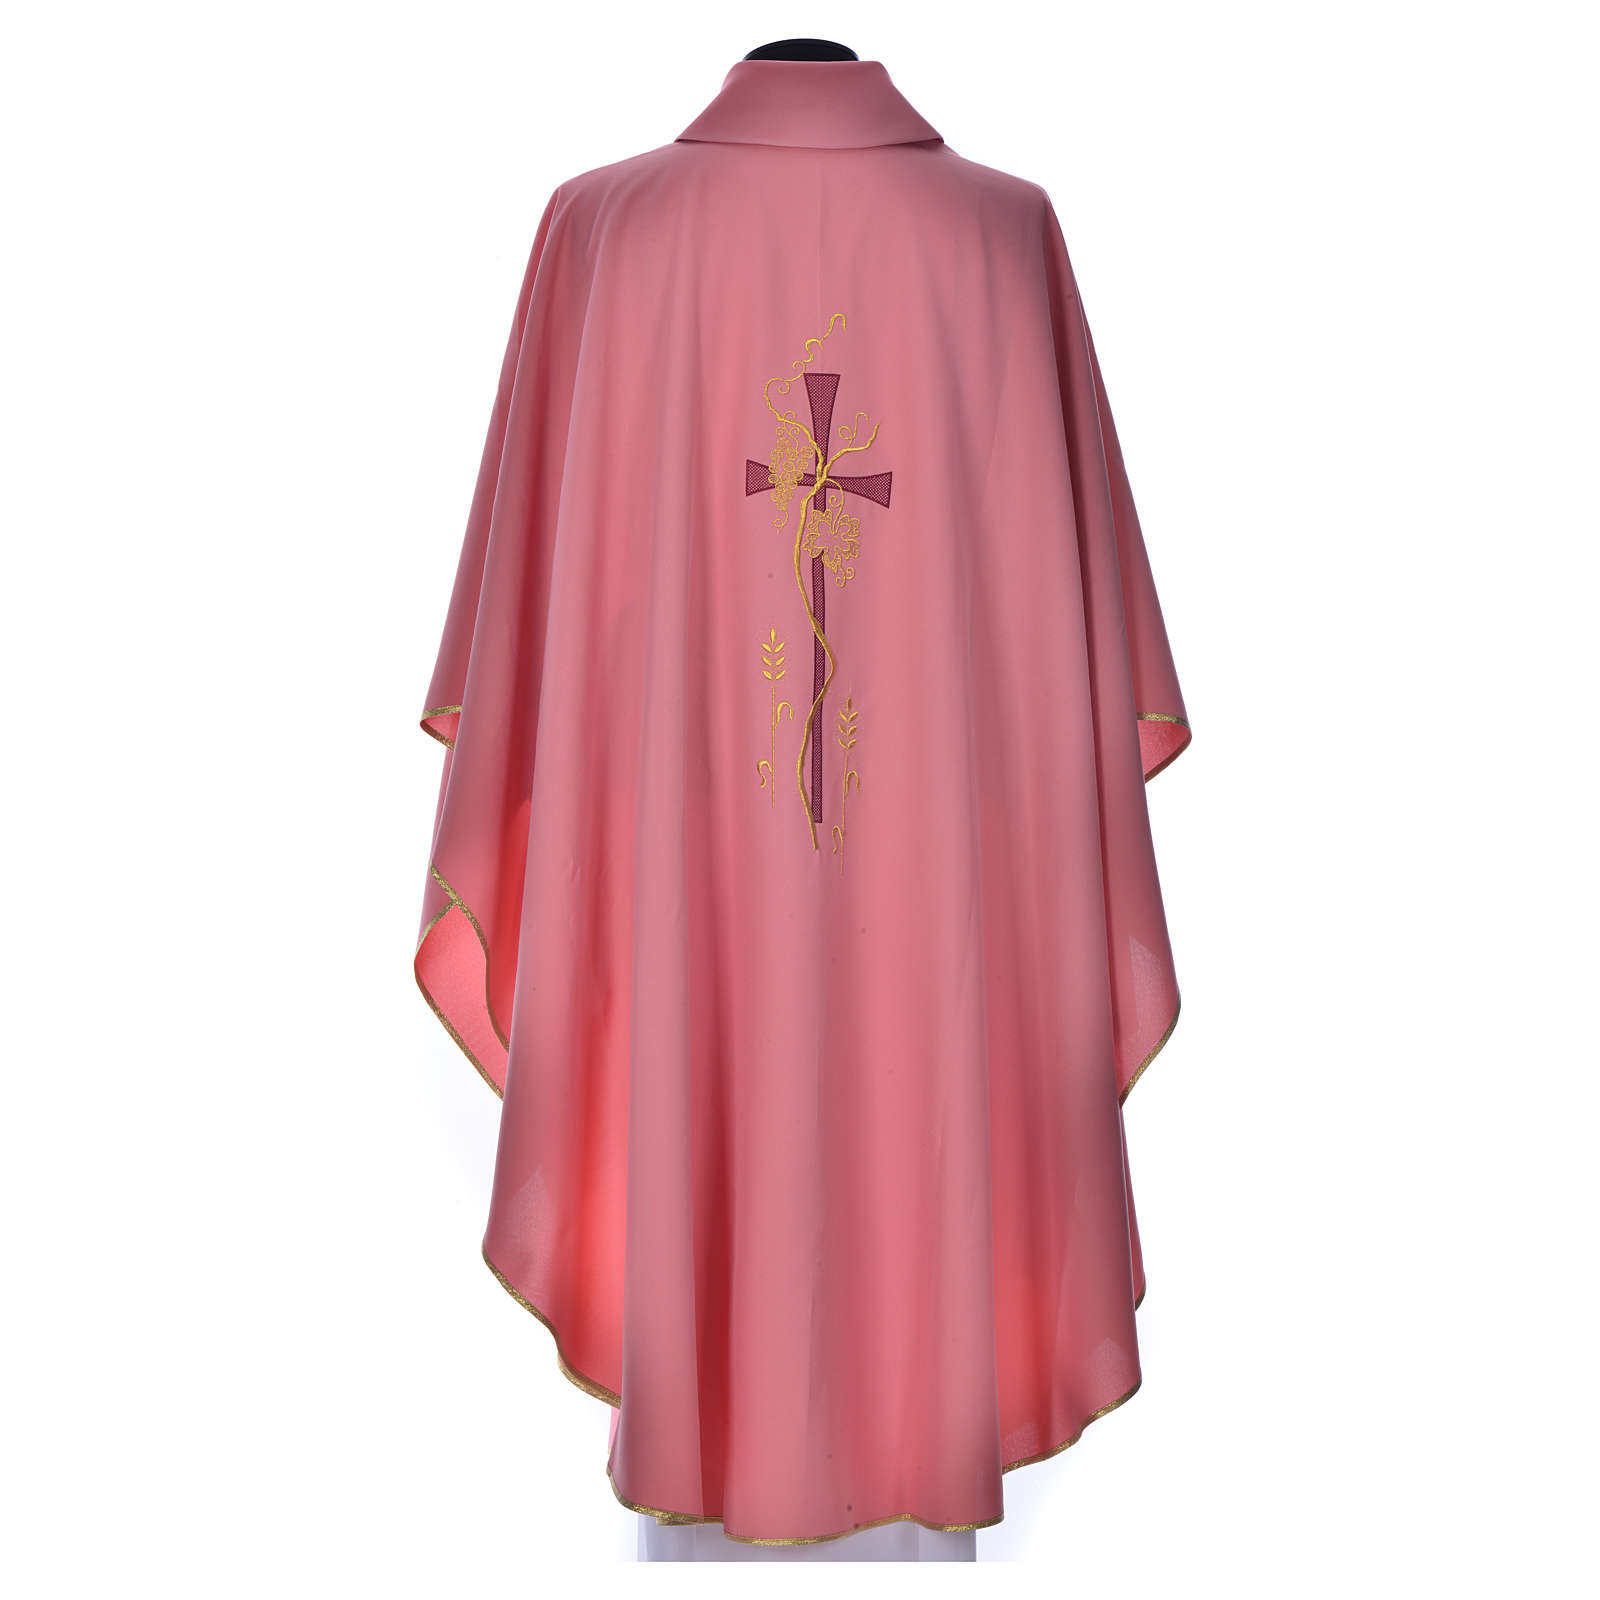 Pink chasuble with cross embroidery 4